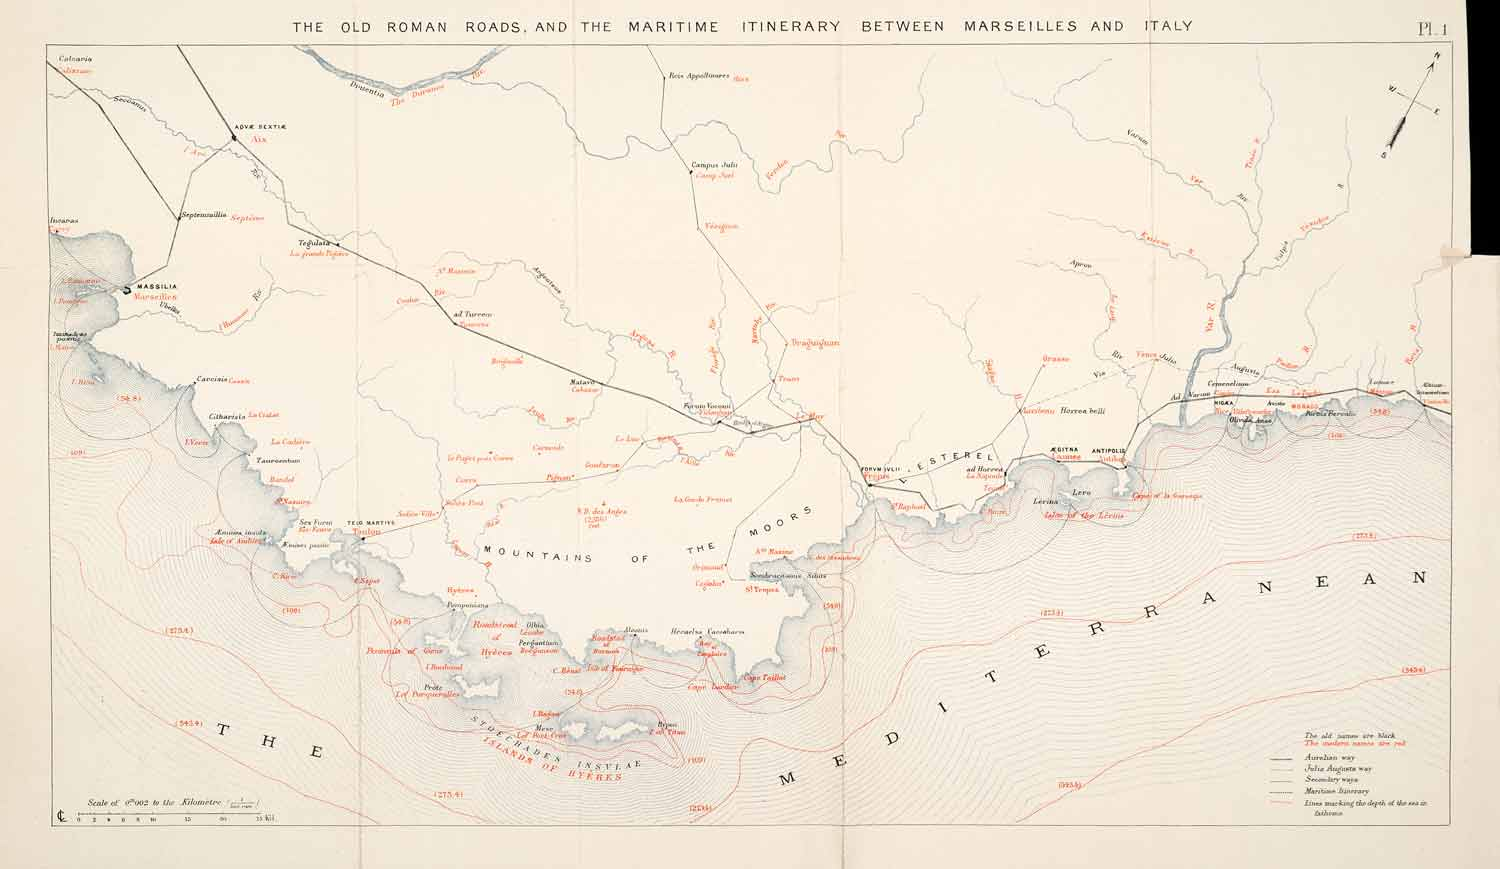 Map Of France Roads.1895 Lithograph Maps Mediterranean France Italy Roman Roads Maritime Route Xgca8